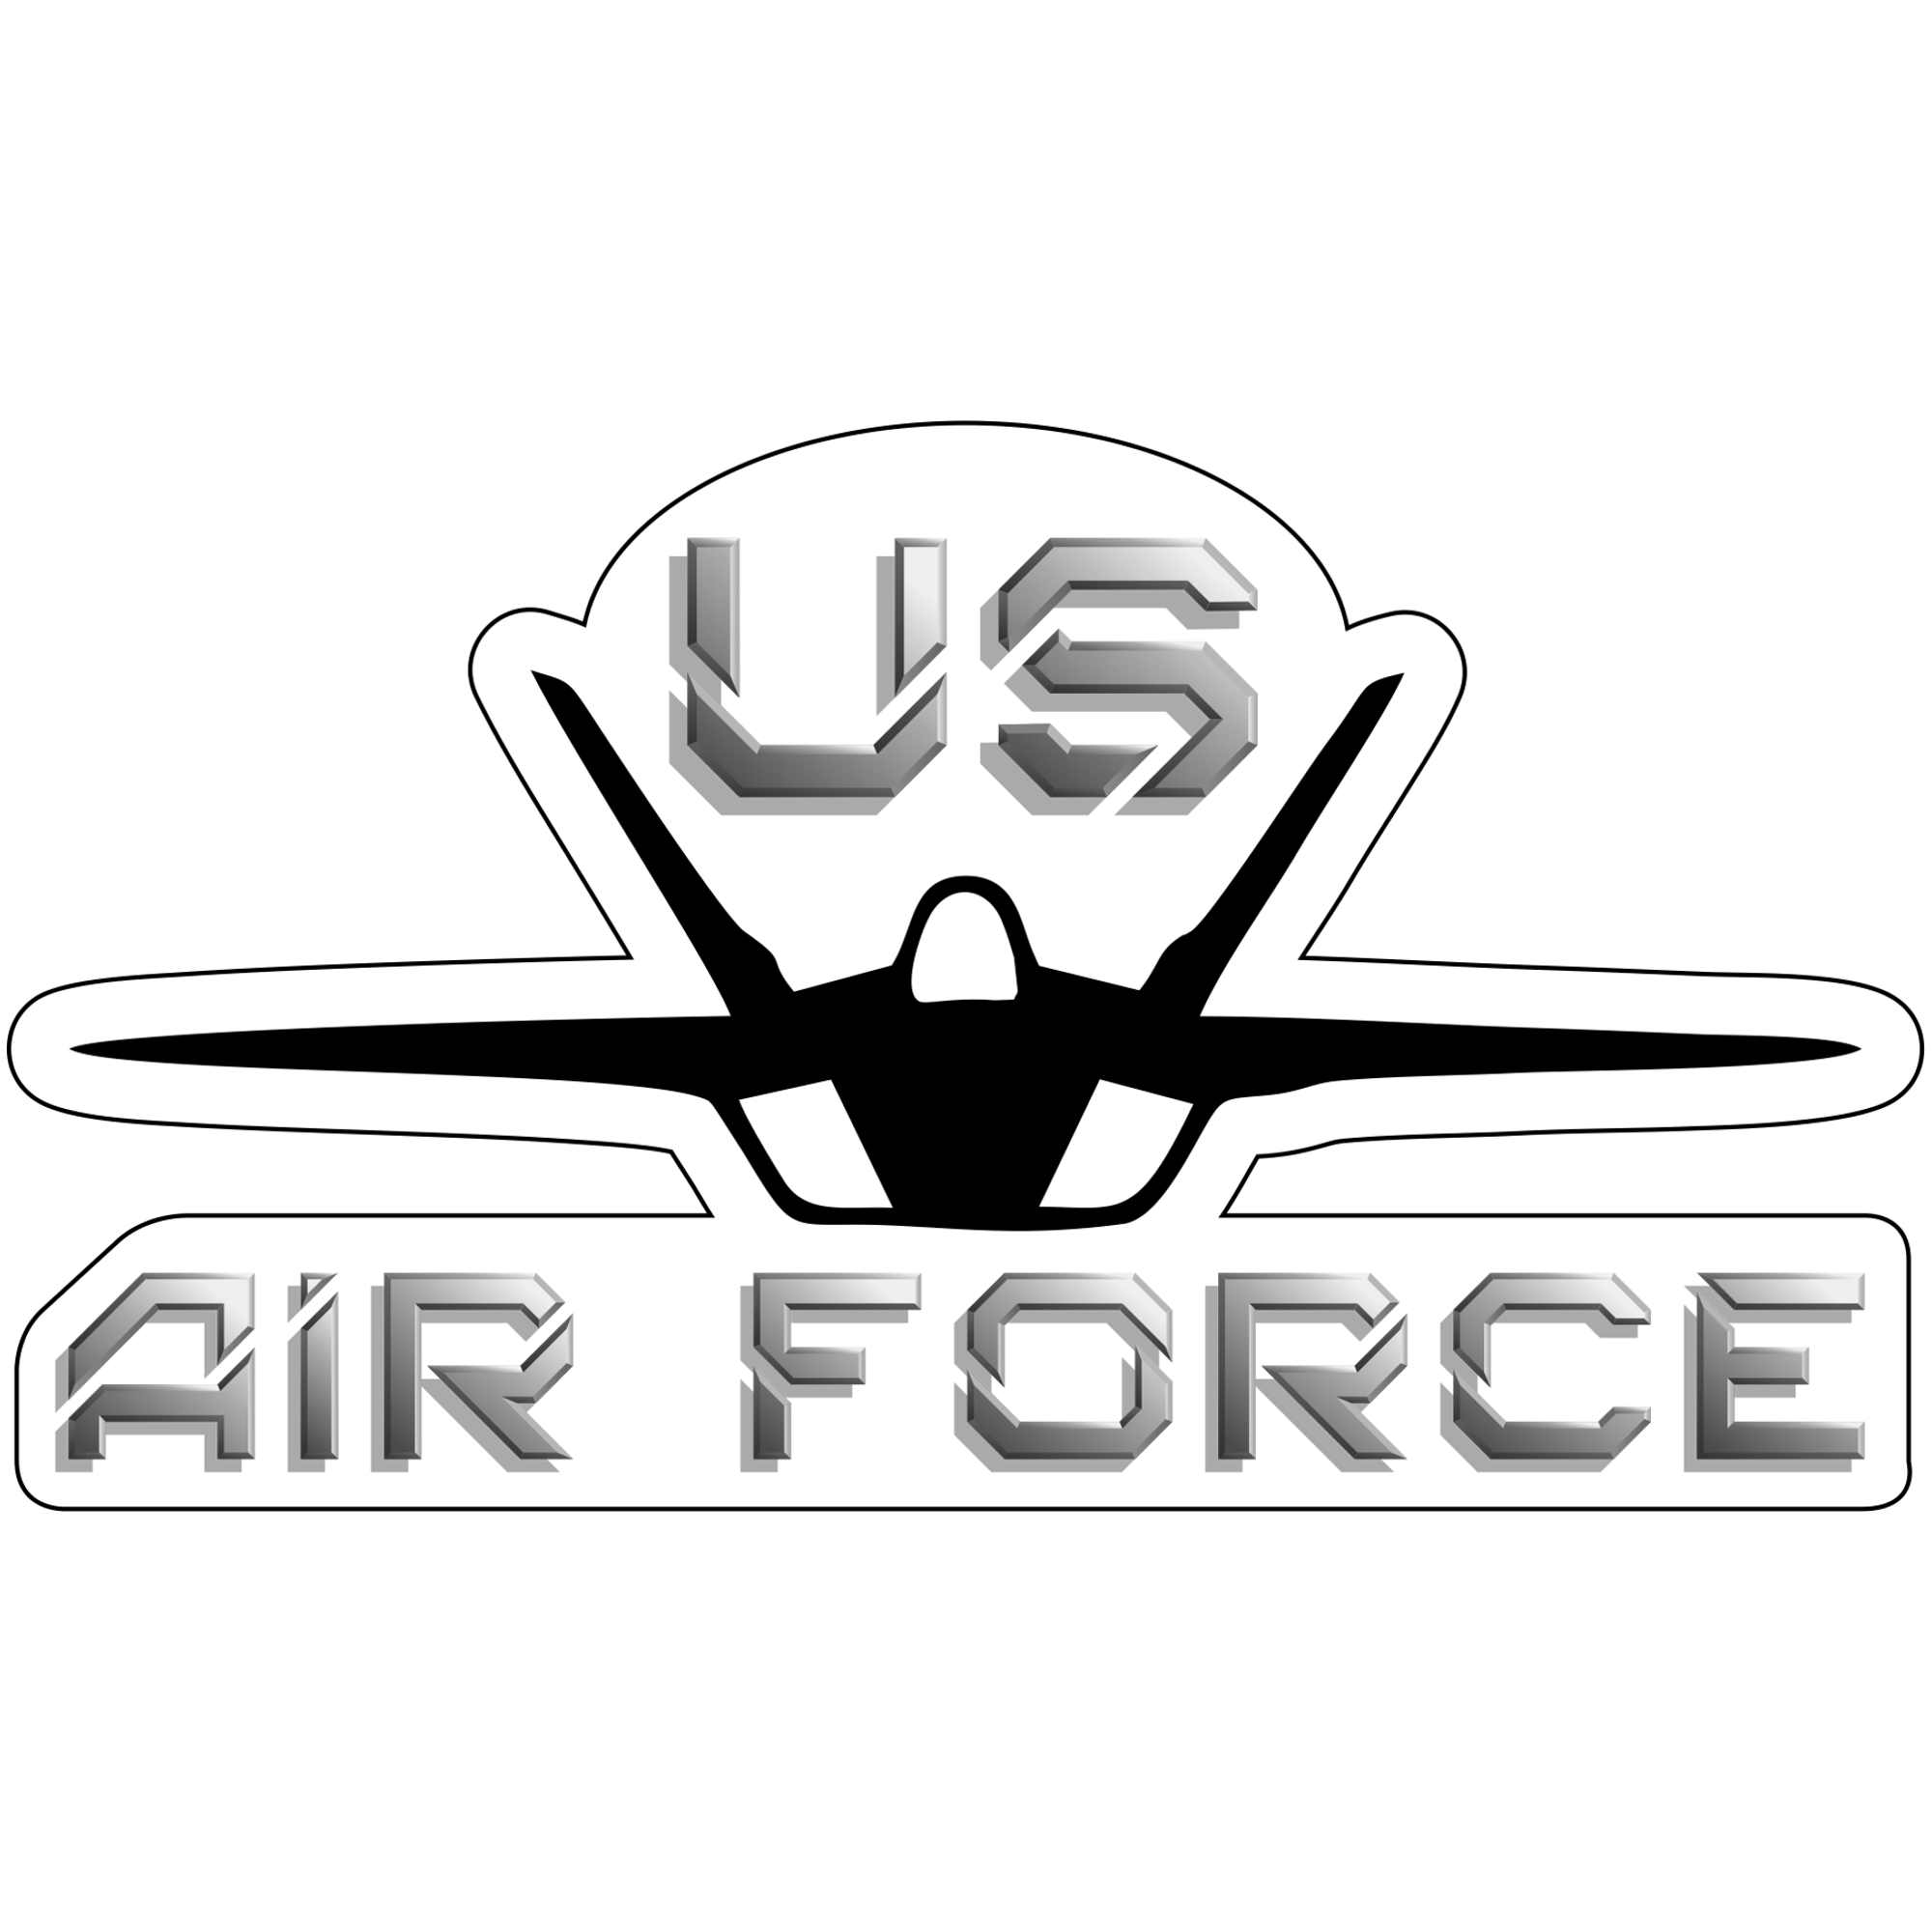 United States Air Force Fighter Jet - 6x3.5 inch Magnet